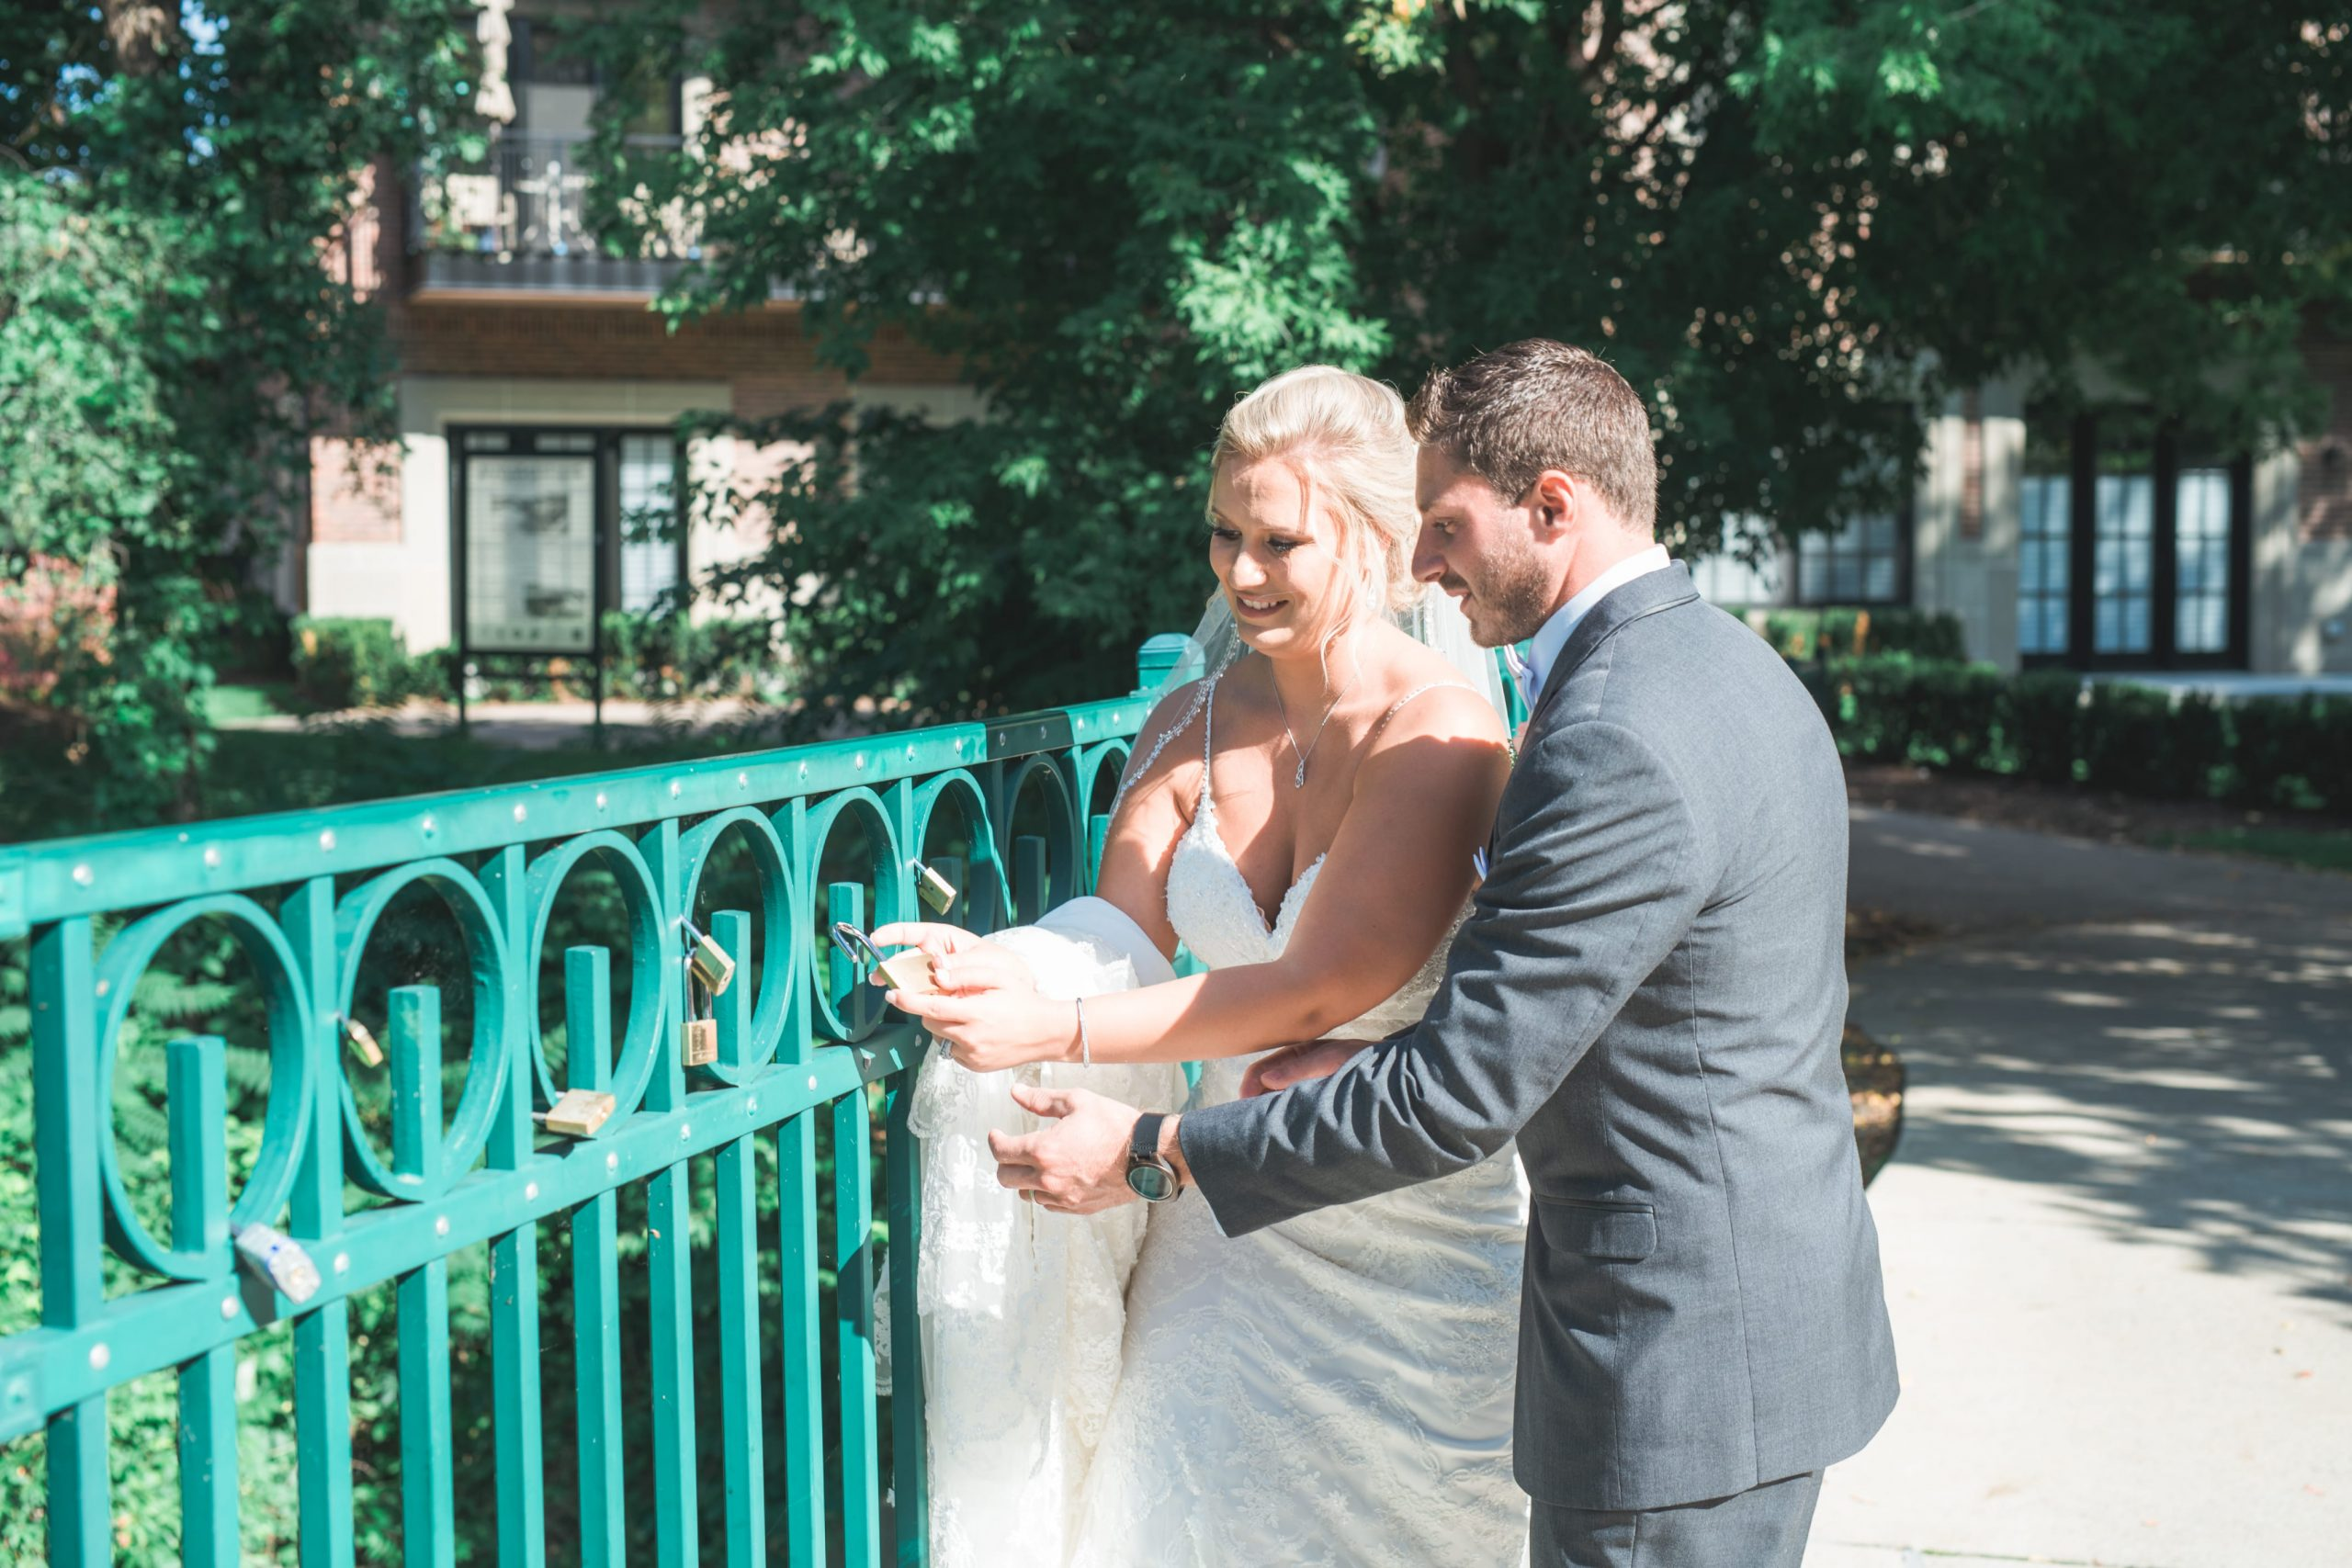 bride and groom putting lock on a fence